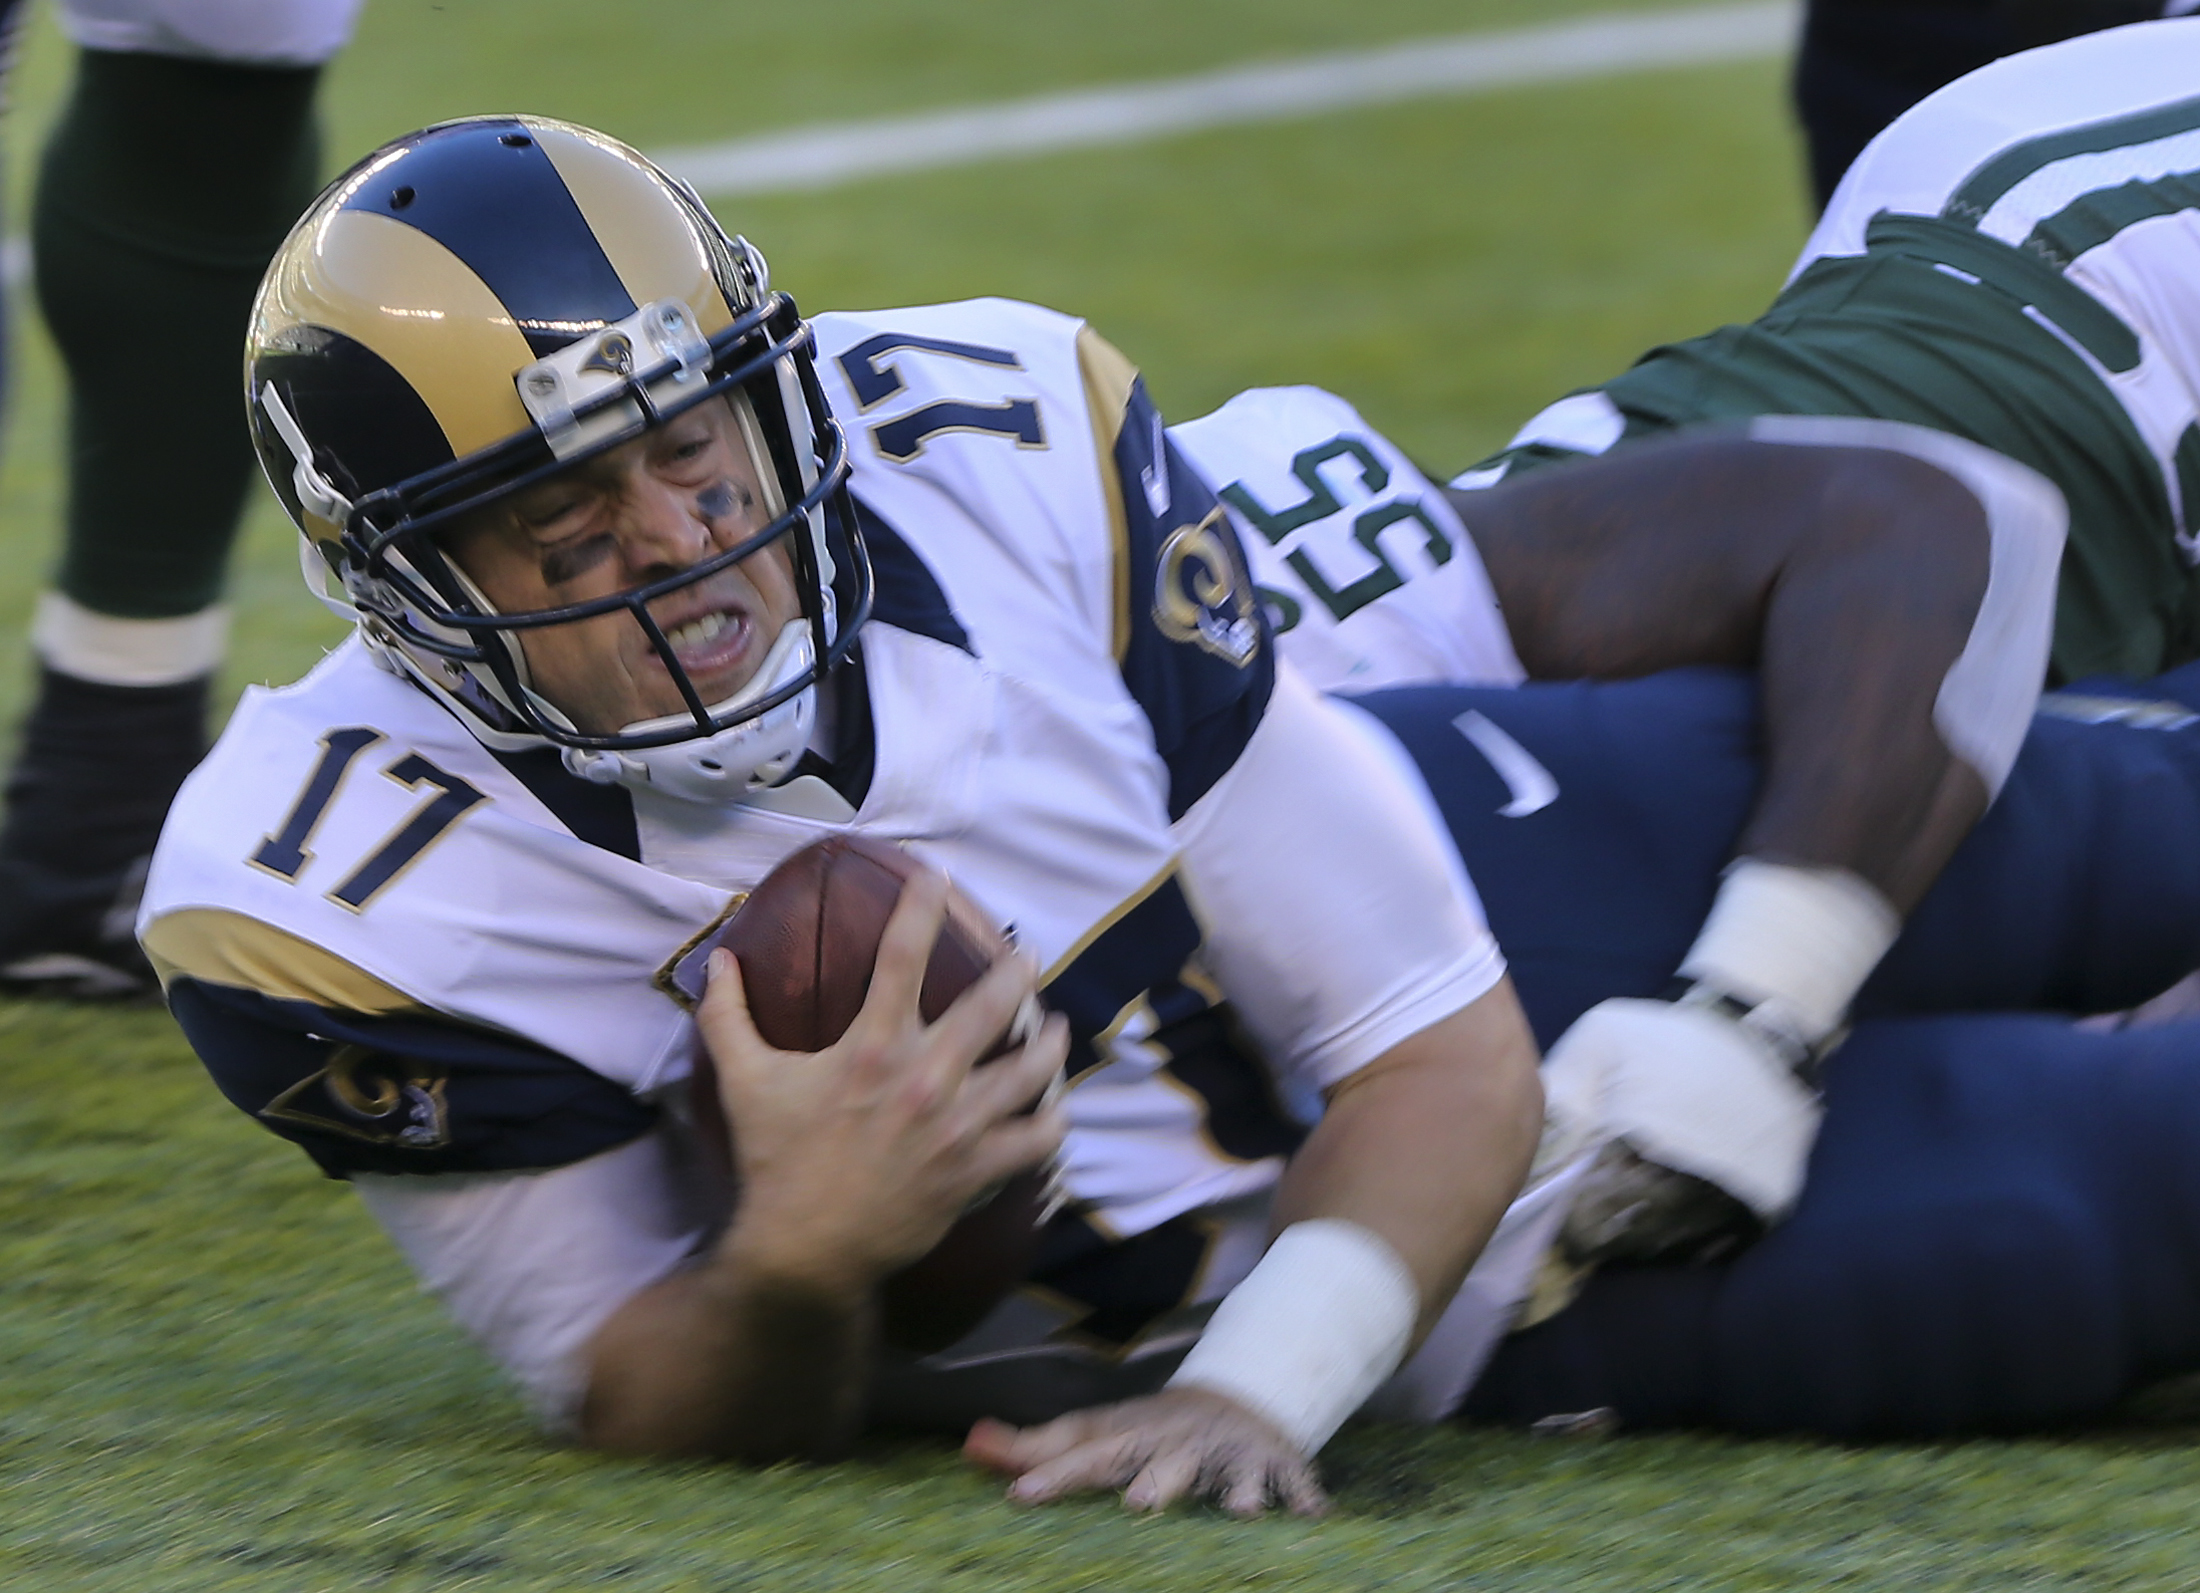 Los Angeles Rams quarterback Case Keenum (17) is tackled by New York Jets outside linebacker Lorenzo Mauldin (55) during the second quarter of an NFL football game, Sunday, Nov. 13, 2016, in East Rutherford, N.J. (AP Photo/Seth Wenig)